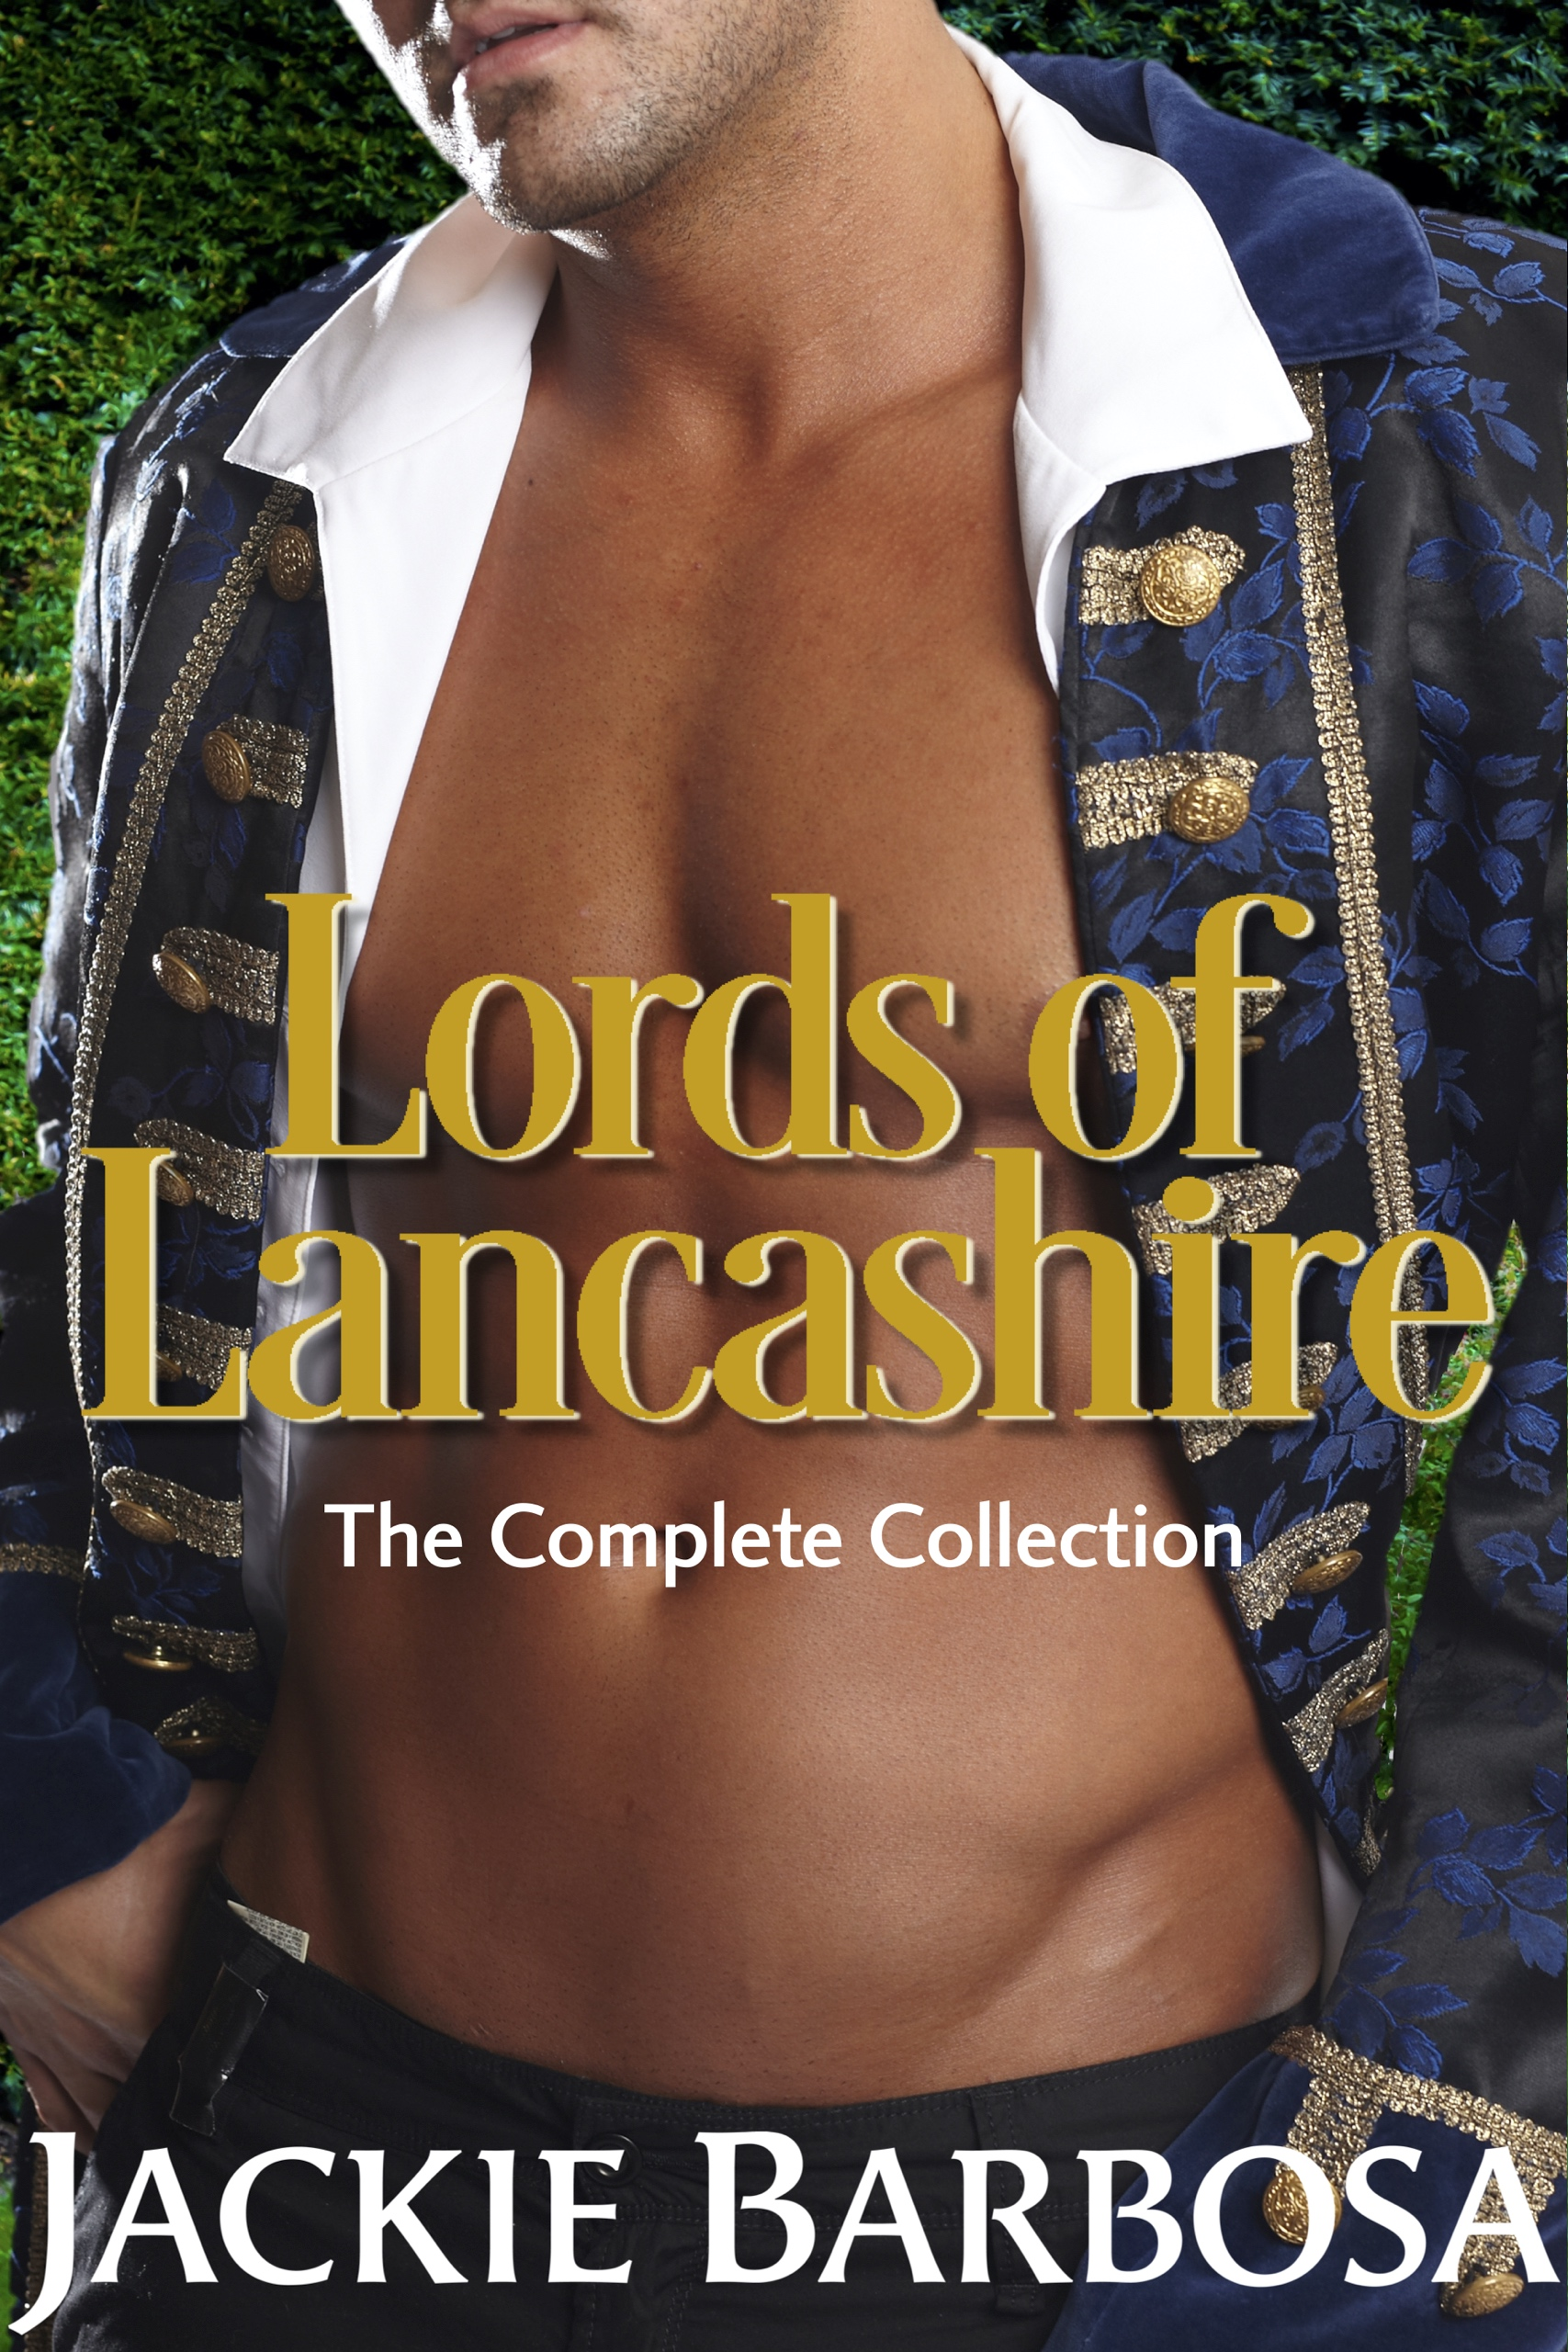 Lords of Lancashire: The Complete Collection by Jackie Barbosa